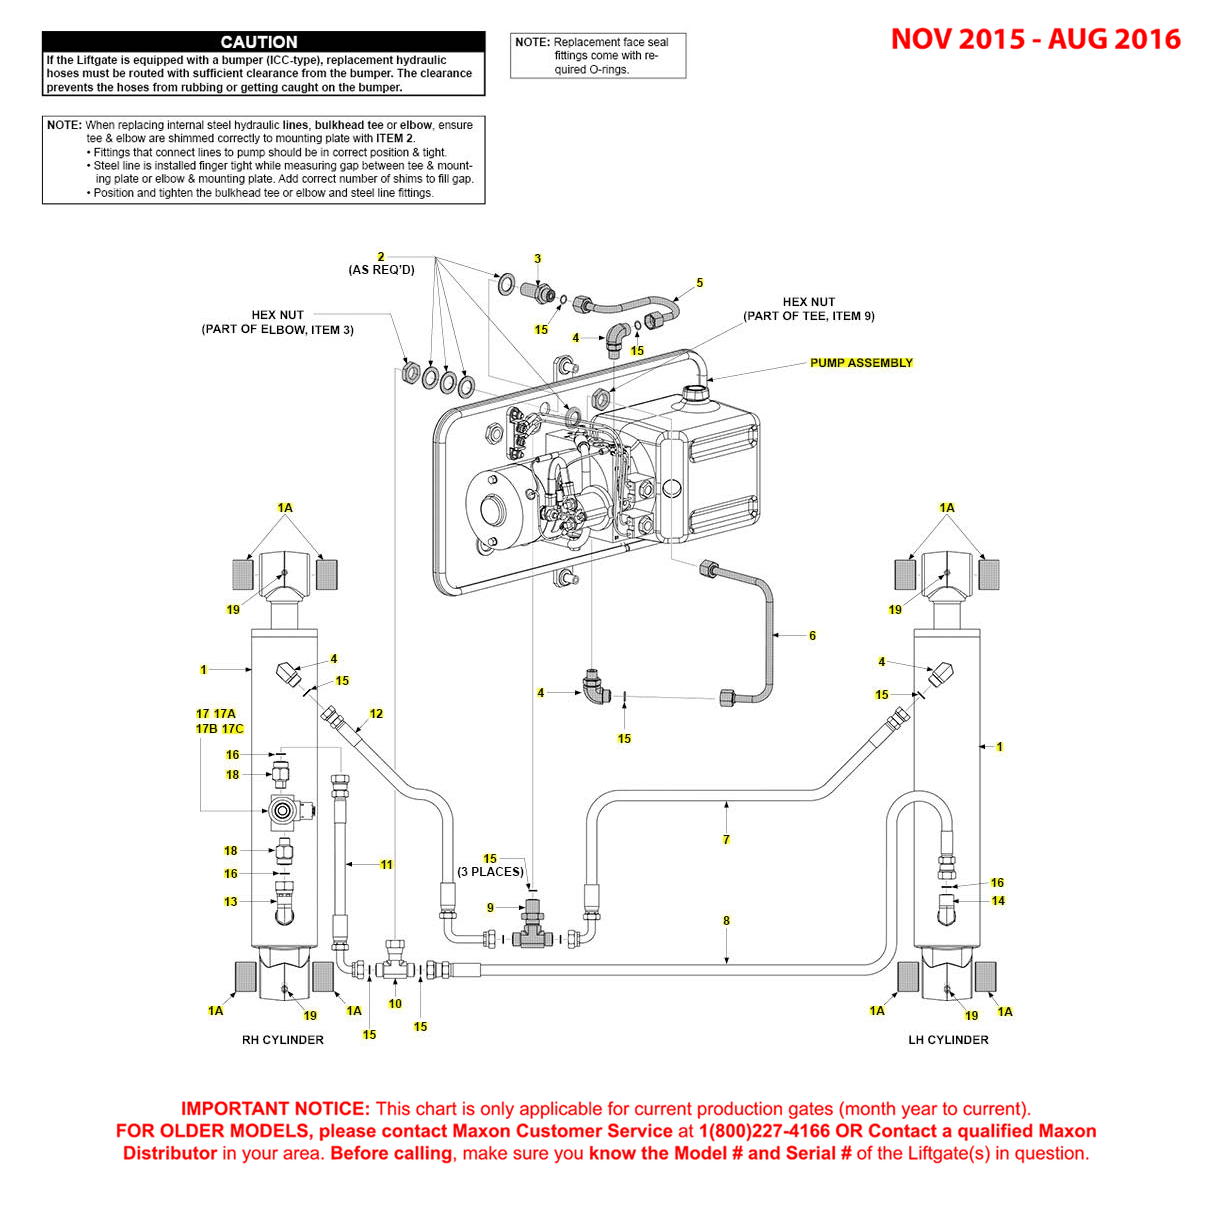 GPT (Nov 2015 - Aug 2016) Power Down Hydraulic Systems Diagram